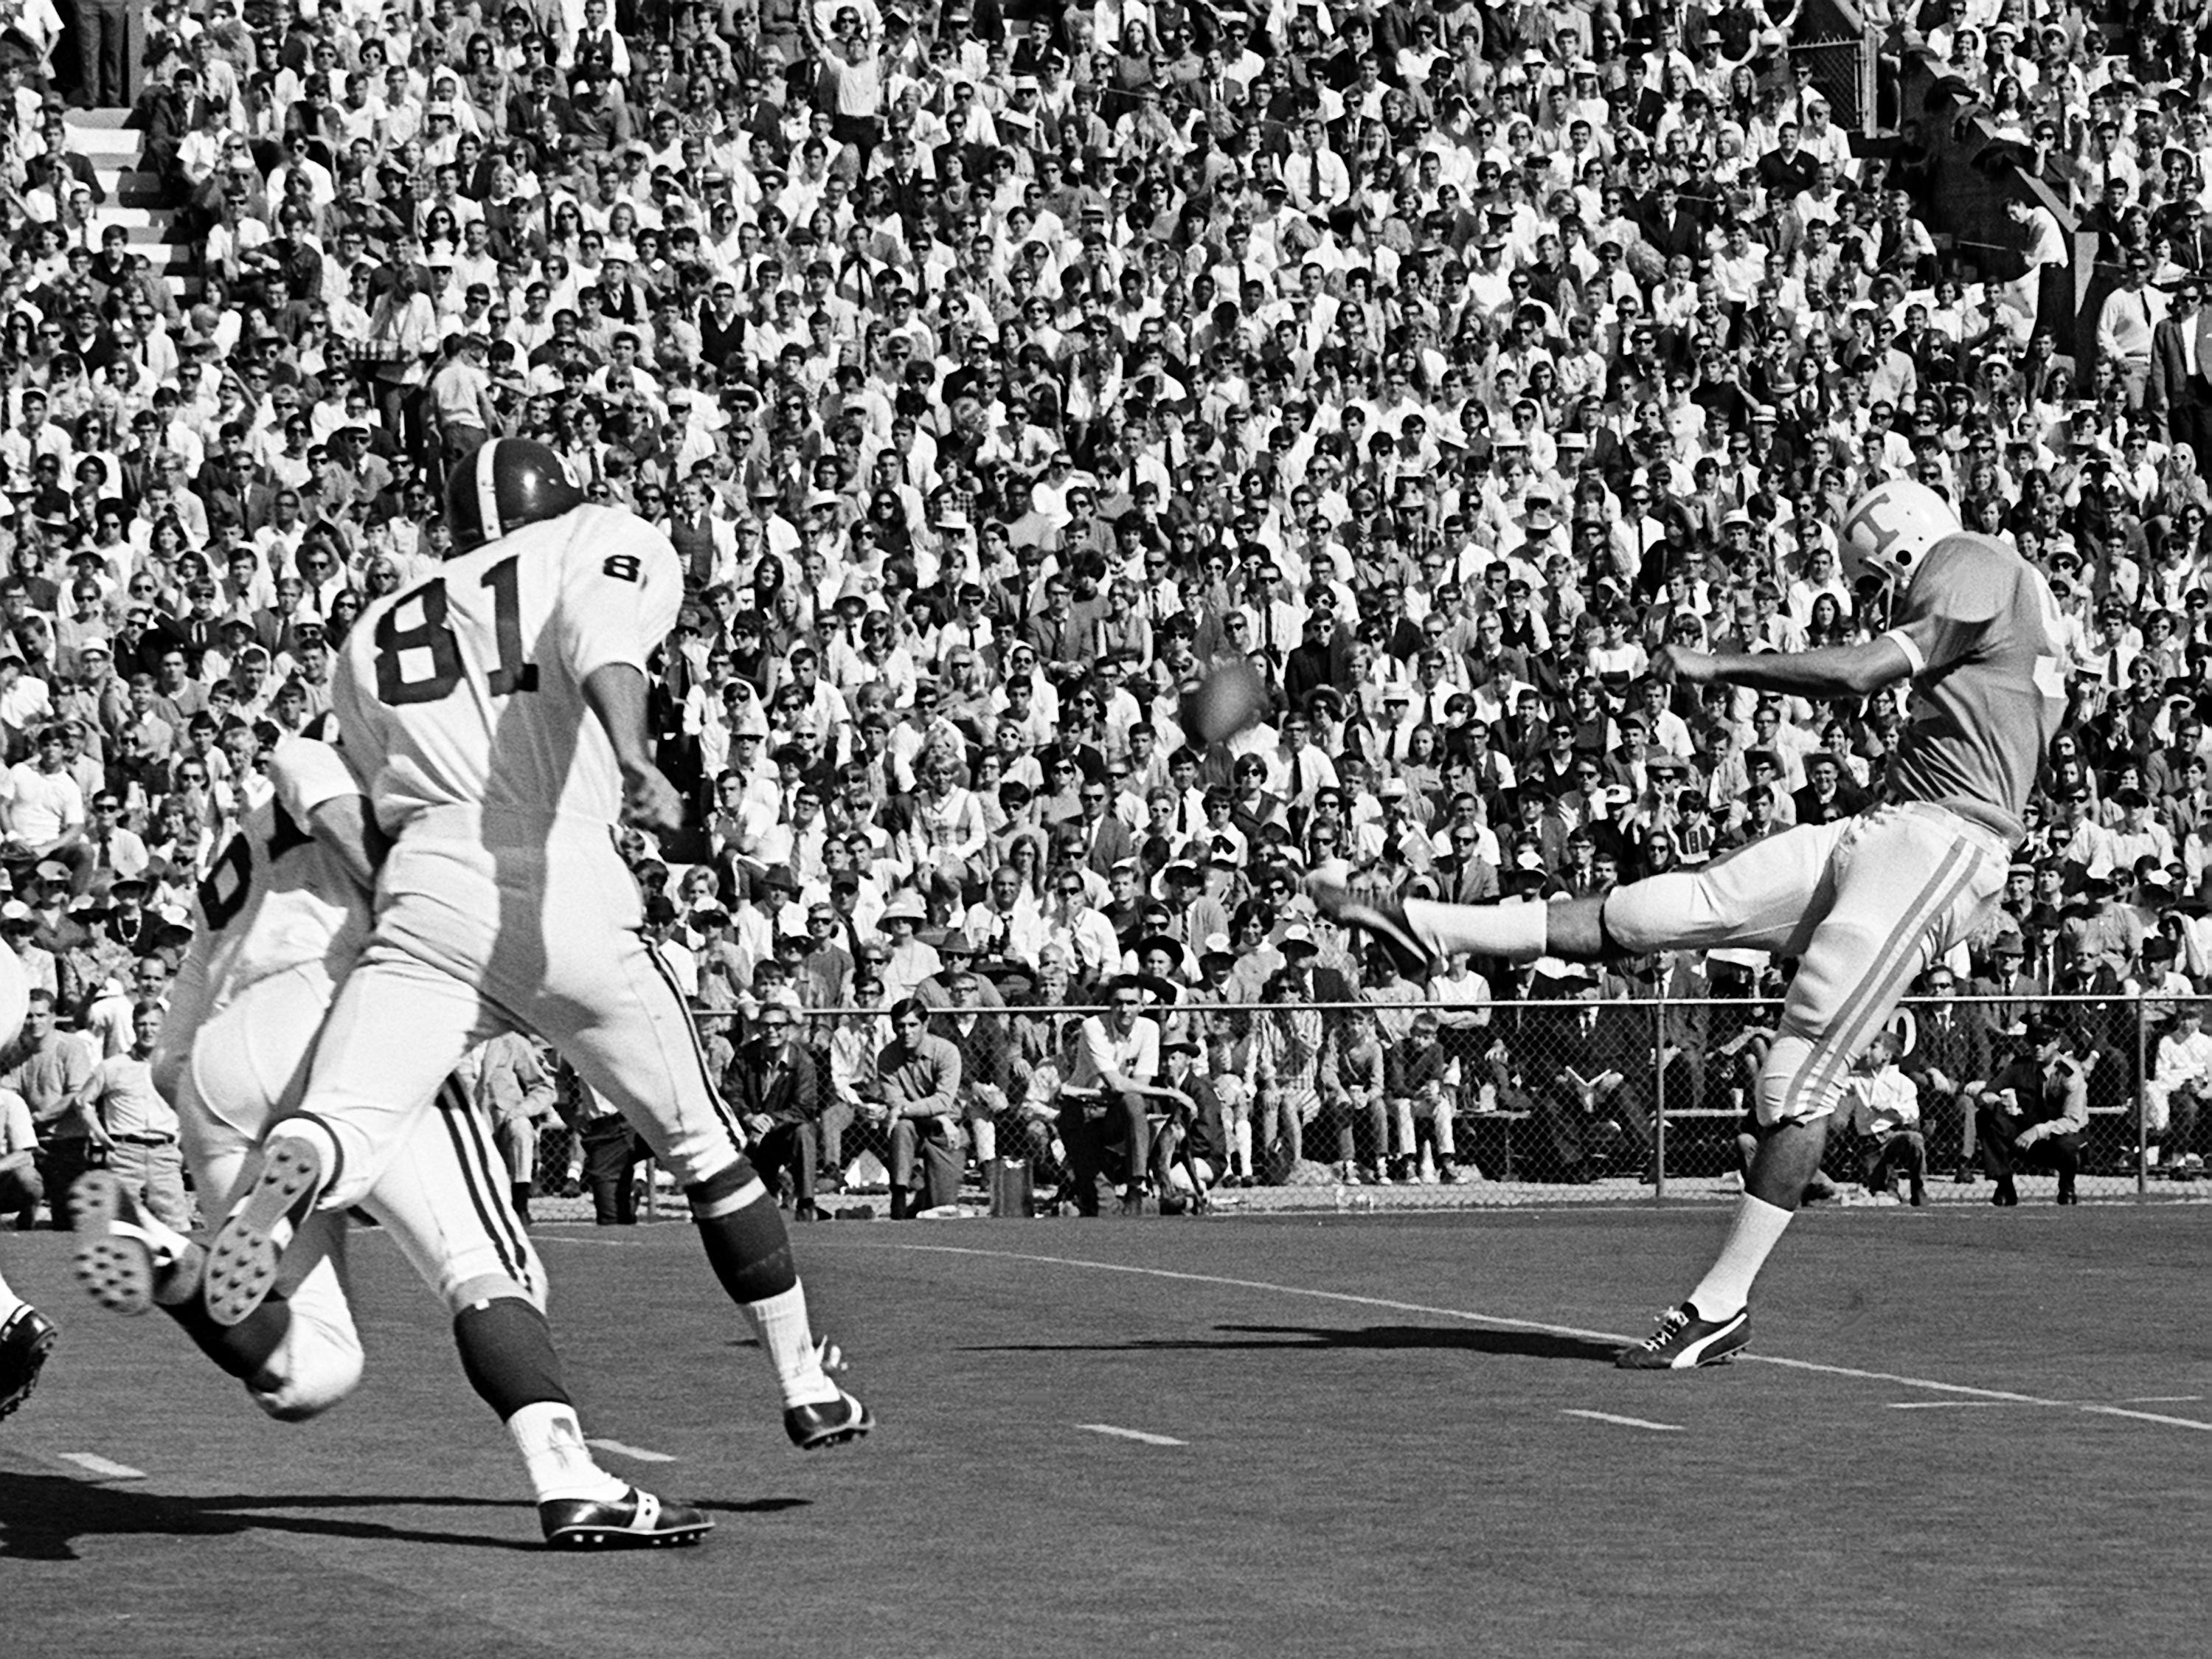 Tennessee junior punter Herman Weaver, right, gets his punt off against Alabama. Weaver, the nation's leading punter with 44-yard average, had a 36.9-yard average in the game as Tennessee survived a missed two-point conversion, an onside kick and a missed field goal in the final minute and 12 seconds to win 10-9 over Alabama at Neyland Stadium Oct. 19, 1968.